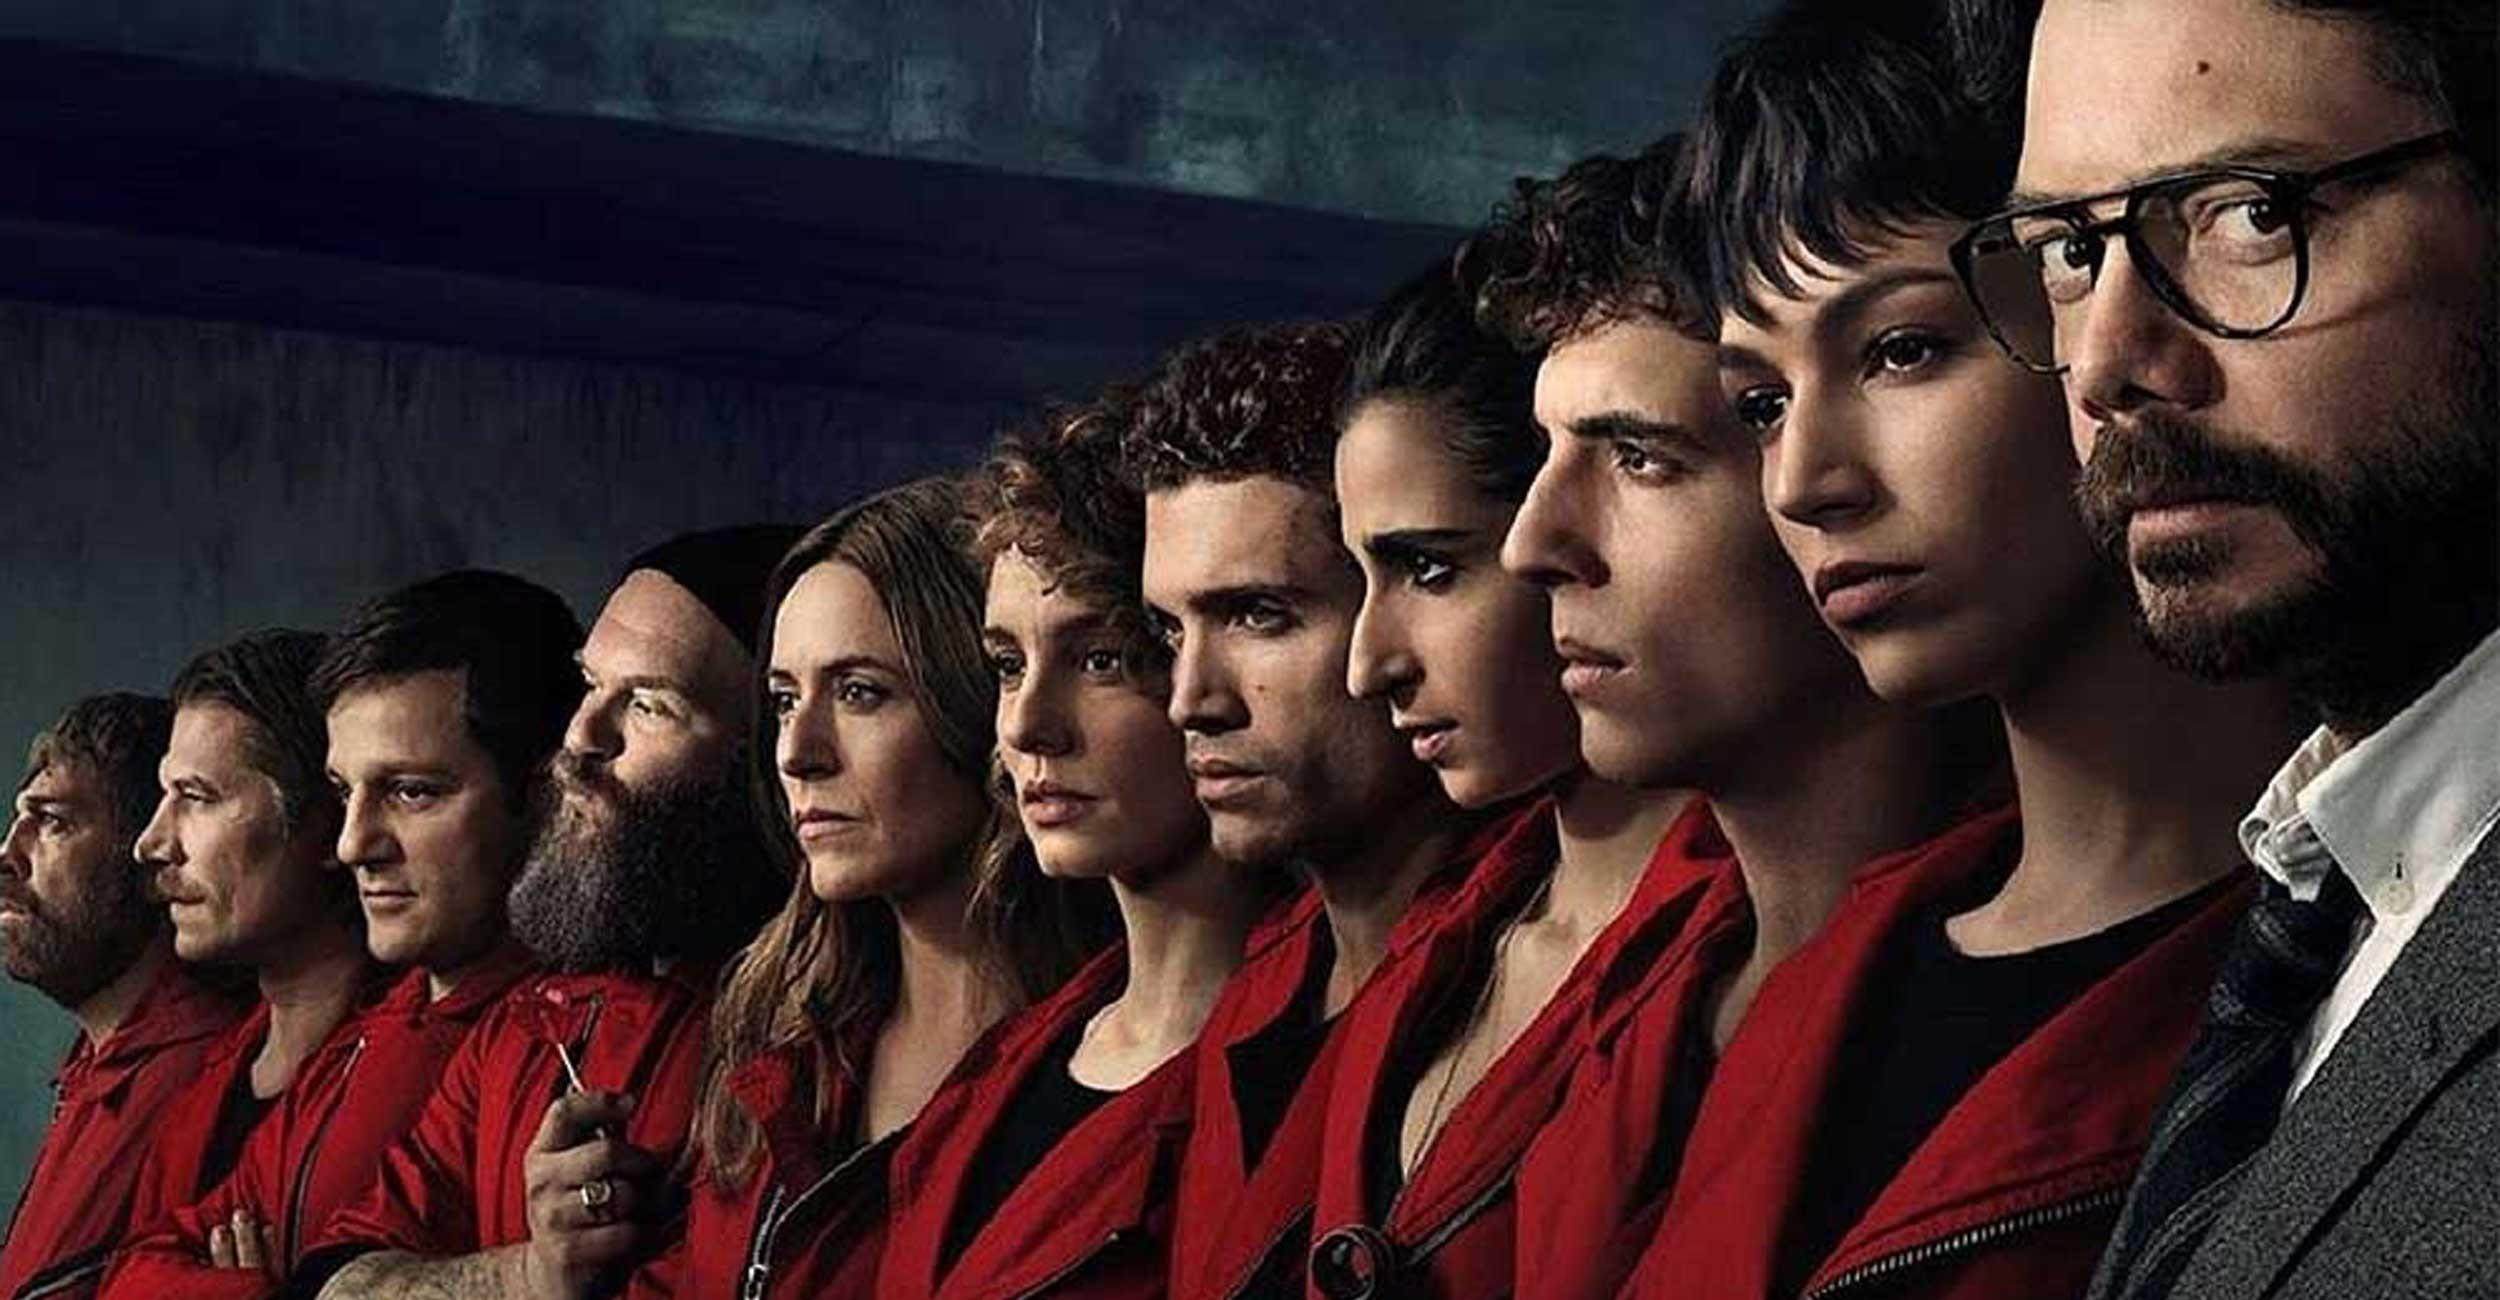 Latest Updates About Money Heist Season 5 Release Date, Cast, Trailer, Synopsis, and More